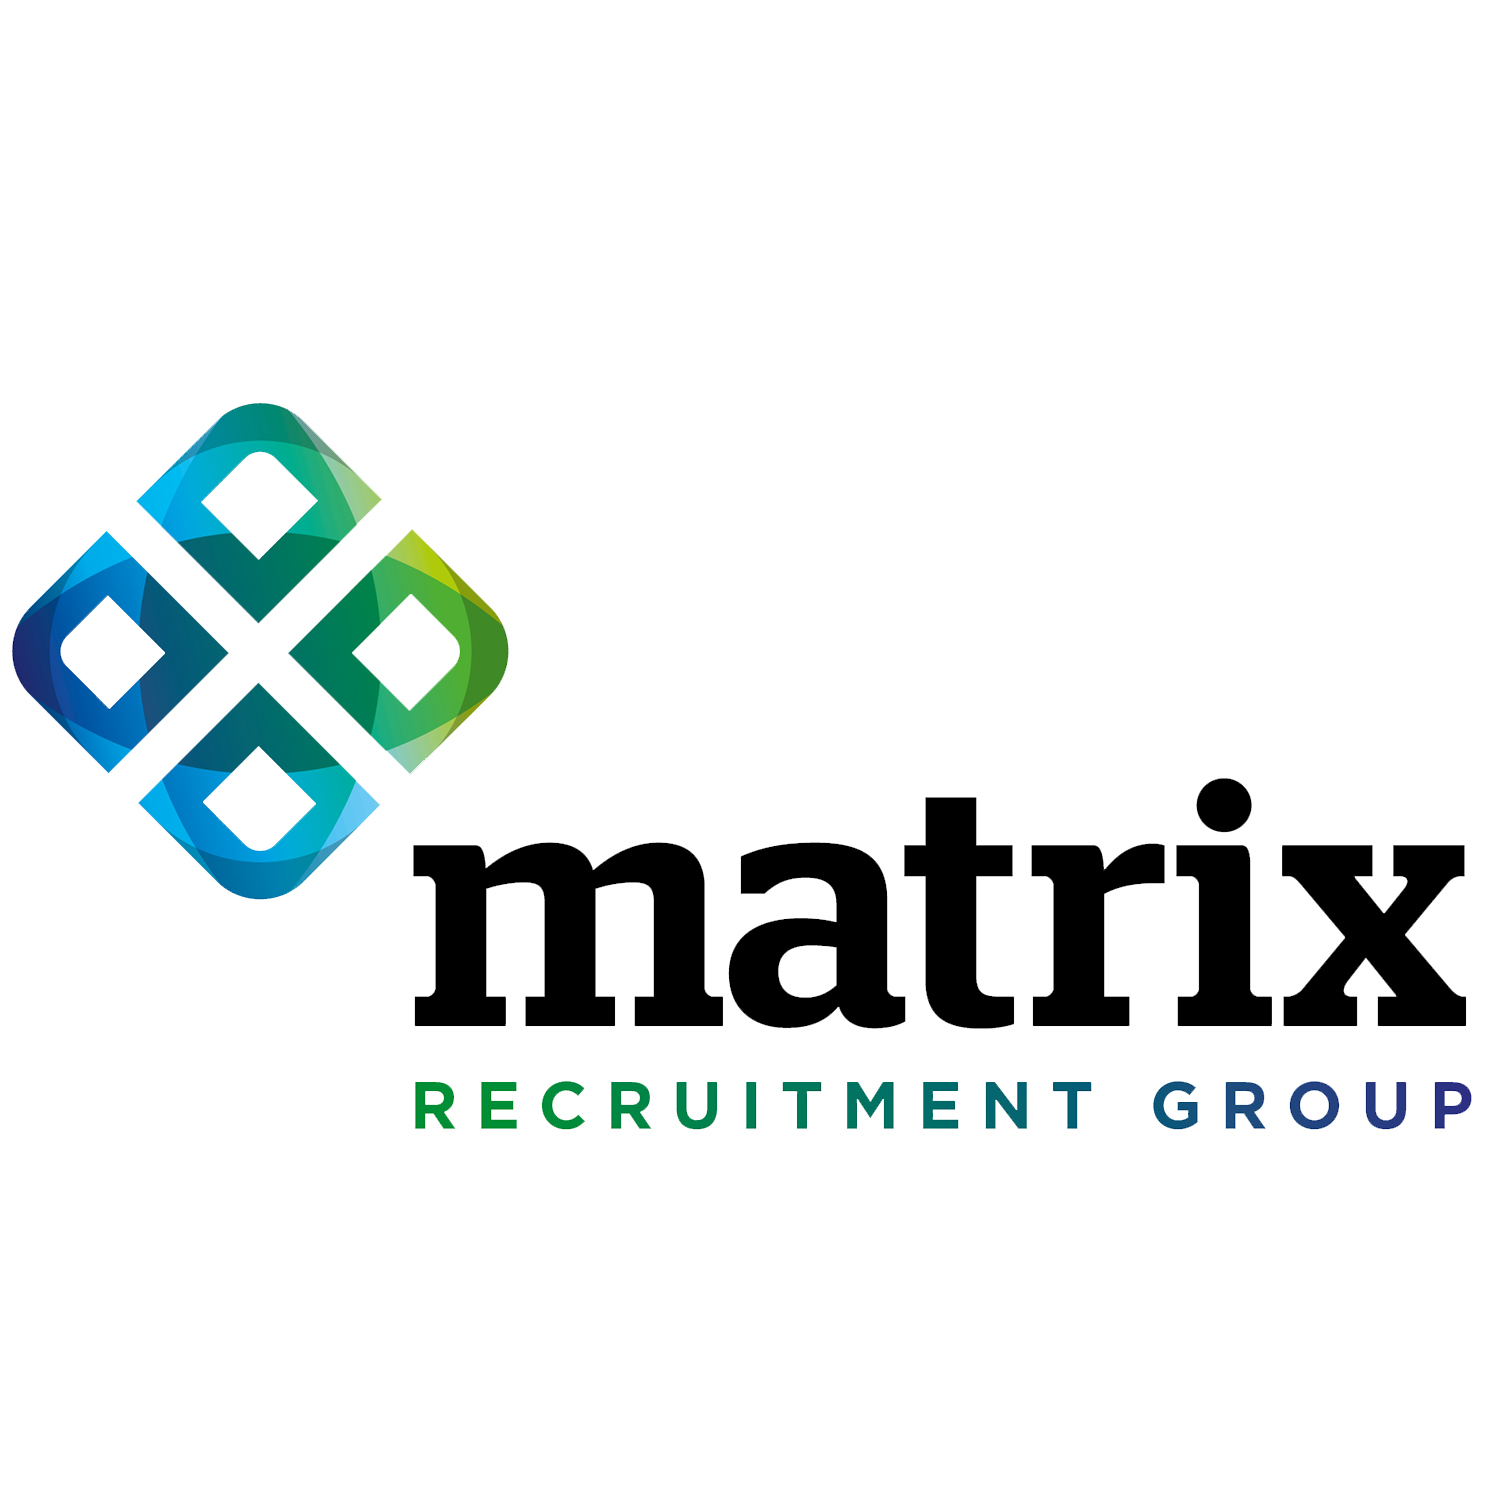 recruitment matrix 1, candidate selection matrix 2, fill in columns based on posting from the  minimum requirements and other considerations, attach a numeric rating (1 - 3.